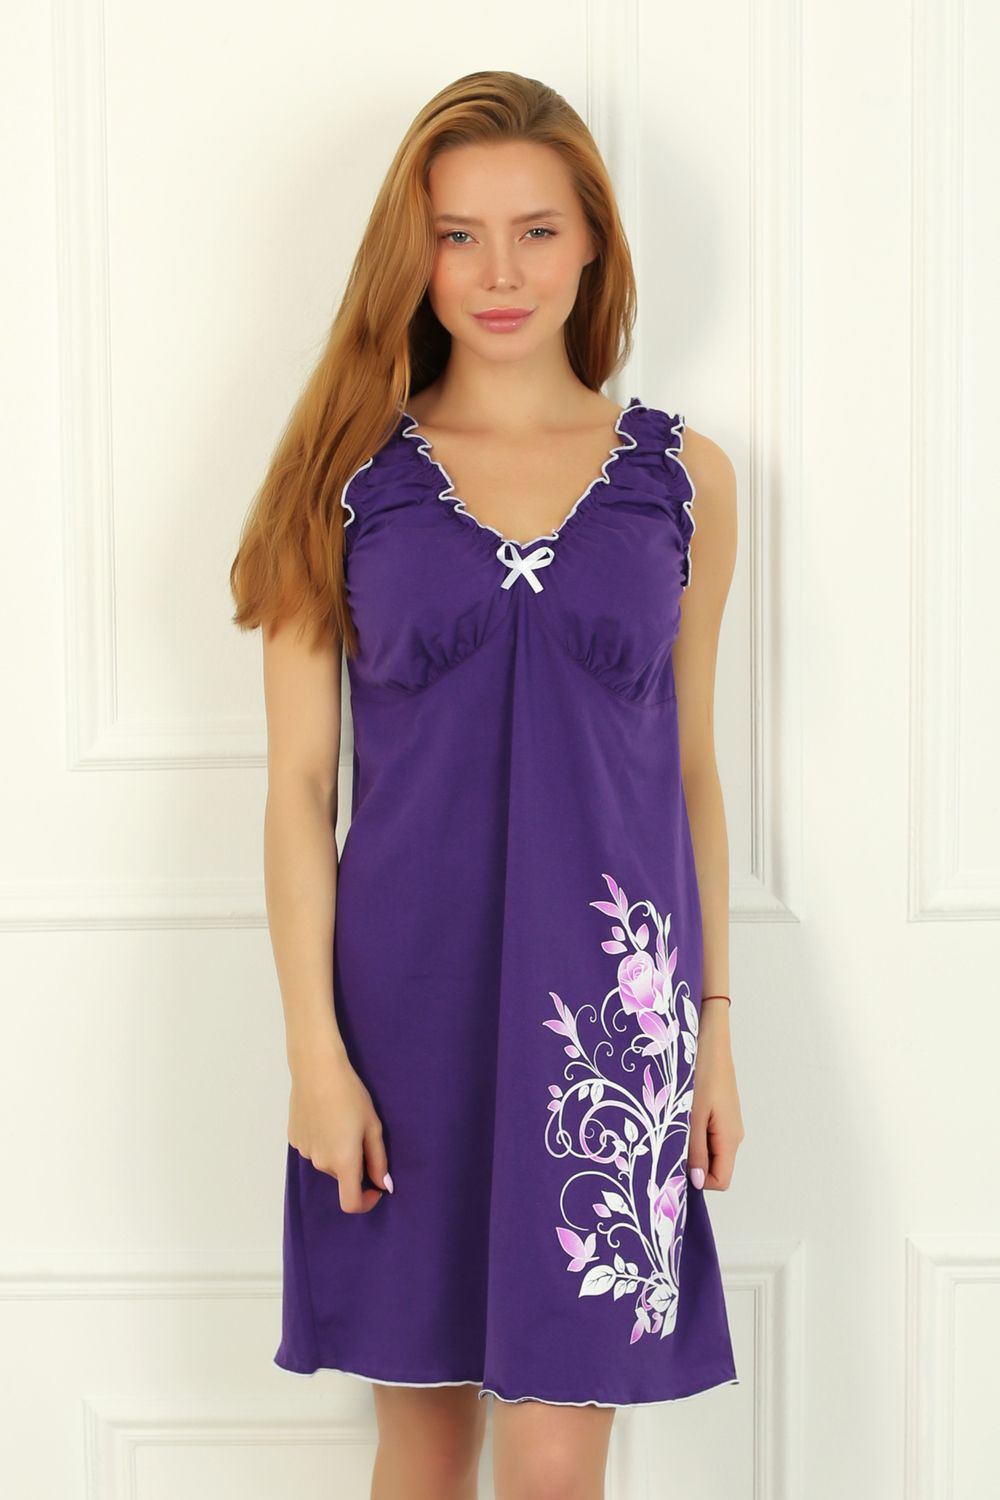 Lika Dress / Nightdress Georgette S Art. 5160